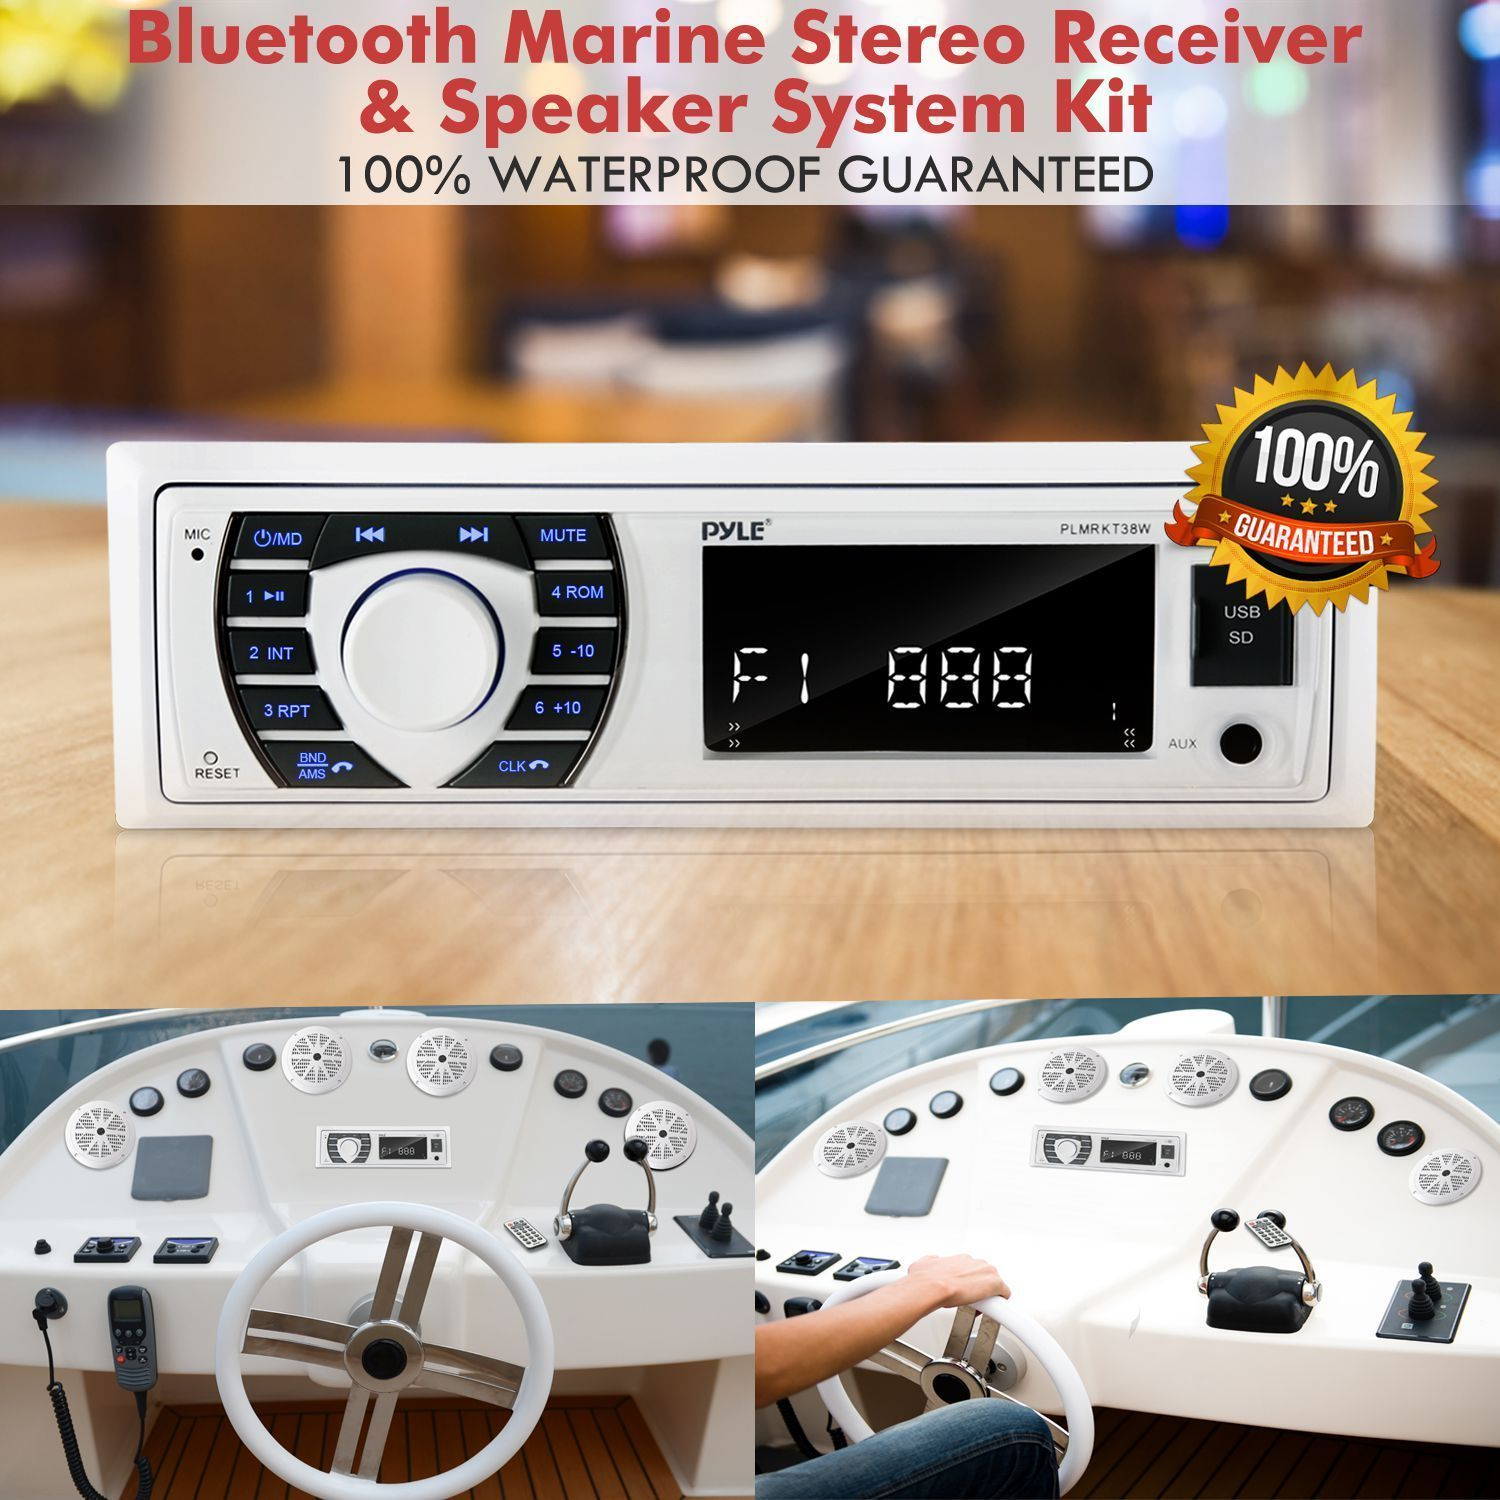 Marine Radio Receiver Speaker Set - 12v Single DIN Style Bluetooth Compatible Waterproof Digital Boat In Dash Console System with Mic - 4 Speakers, Remote Control, Wiring Harness - PLMRKT38W (White)